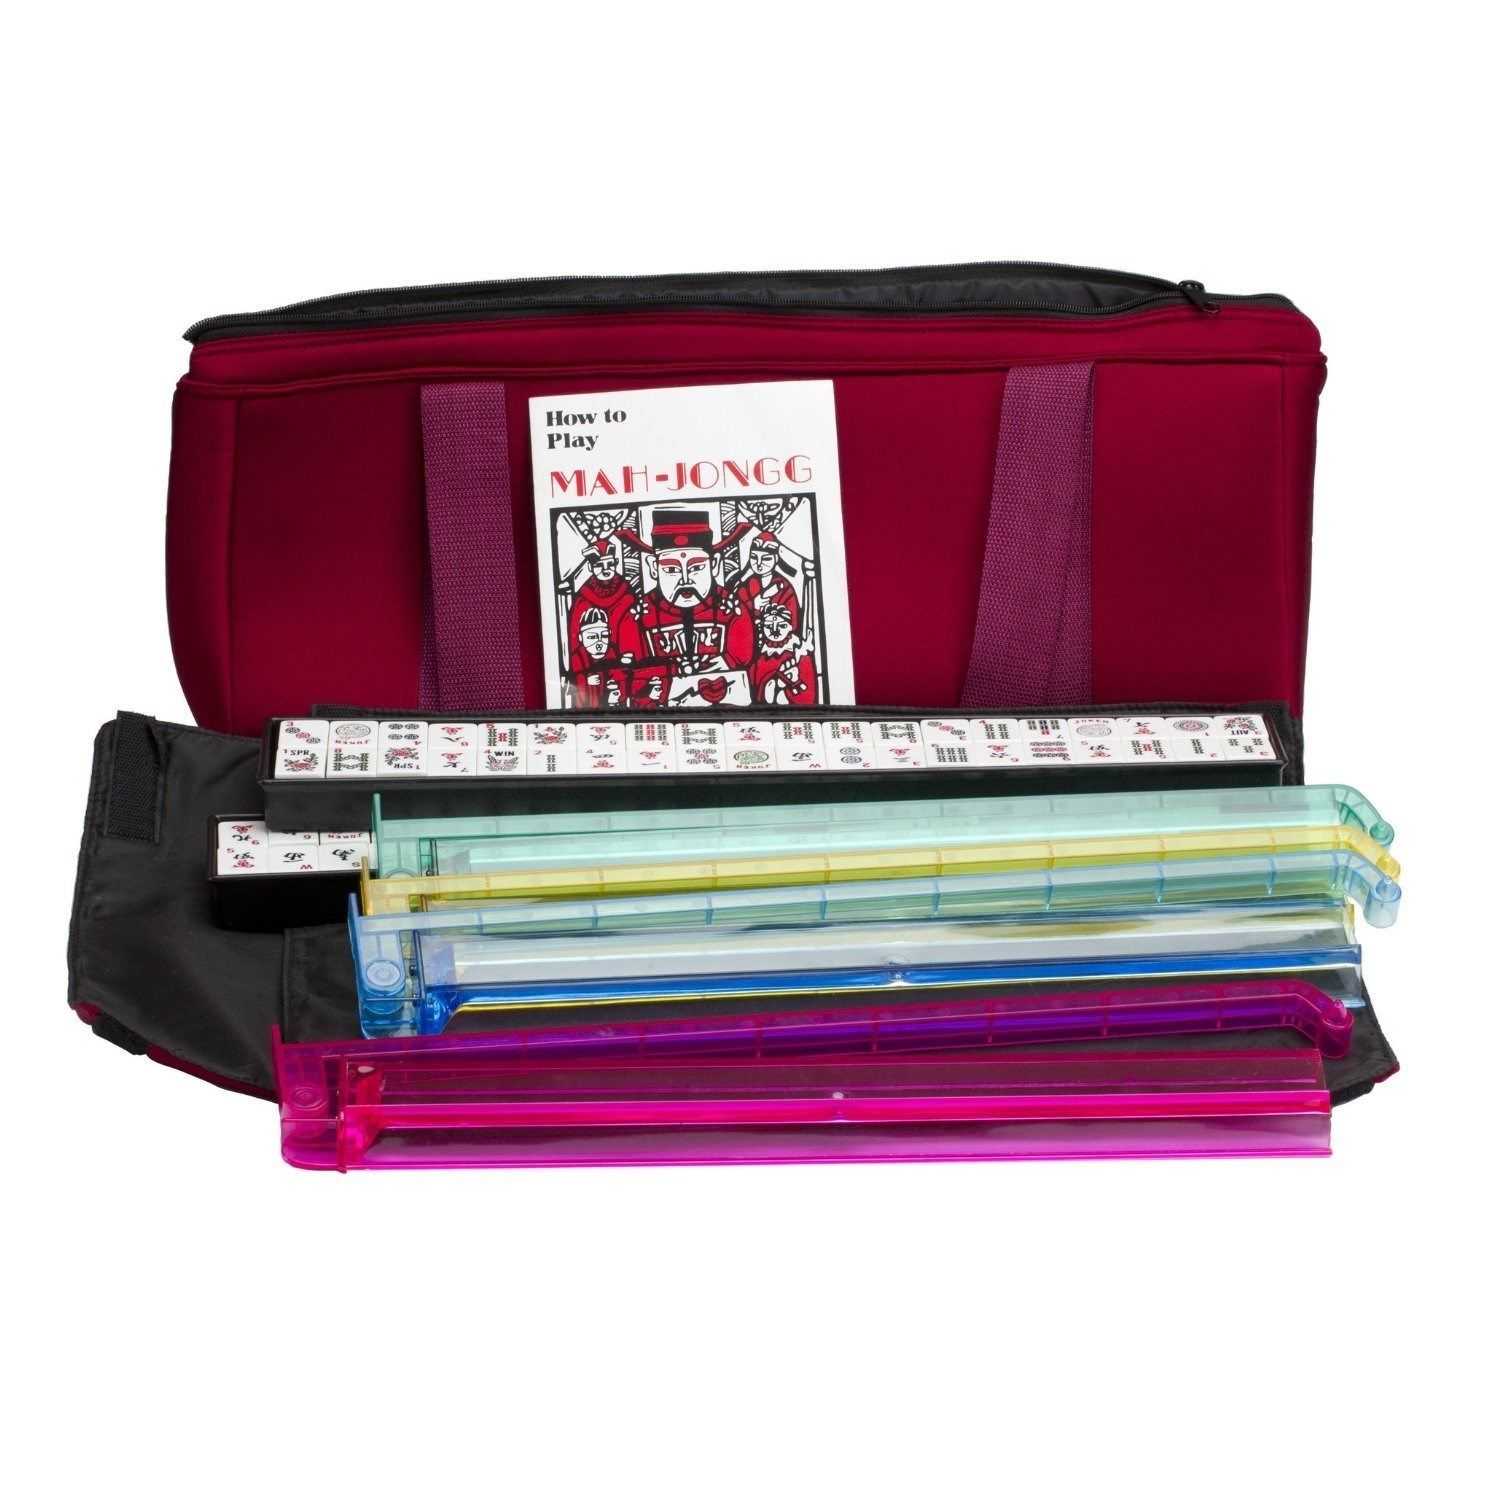 American Western Mahjong Set 166 Tiles and 4 Color Pusher Racks Soft Violet Red Bag